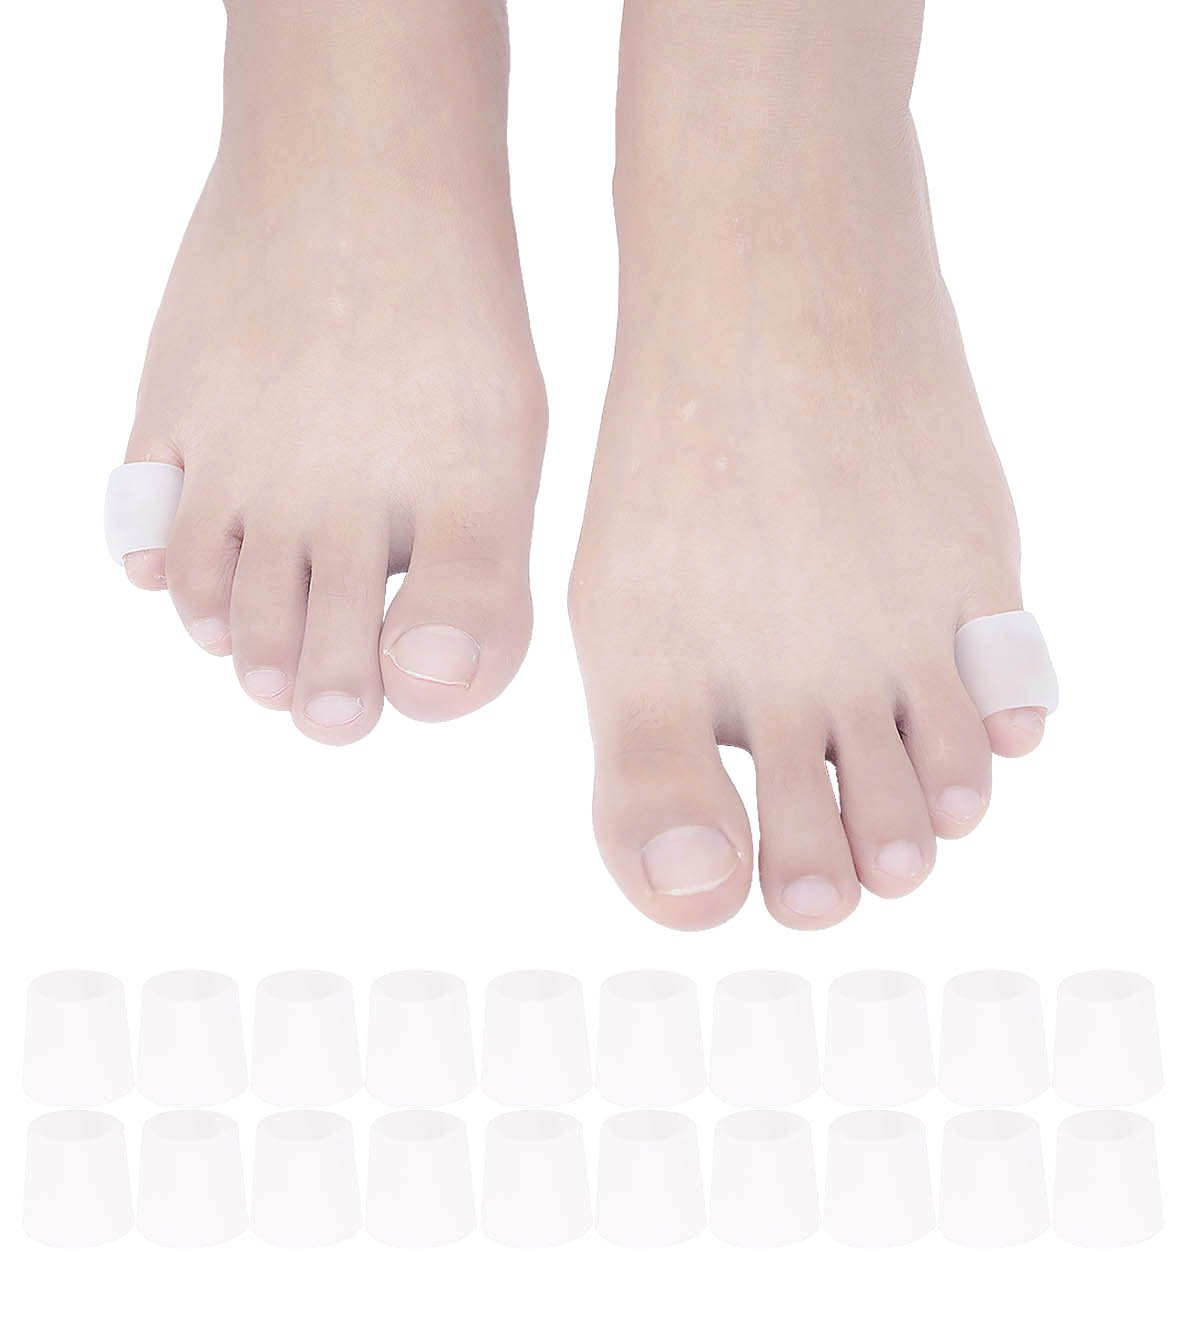 JK.Toes Pinky Toe Sleeves Gel Corn Cushion Pads 10 Pairs/20 Pack Toe Protectors for Blister, Corn, Nail Issue, Reduce Friction(Toe Sleeves)